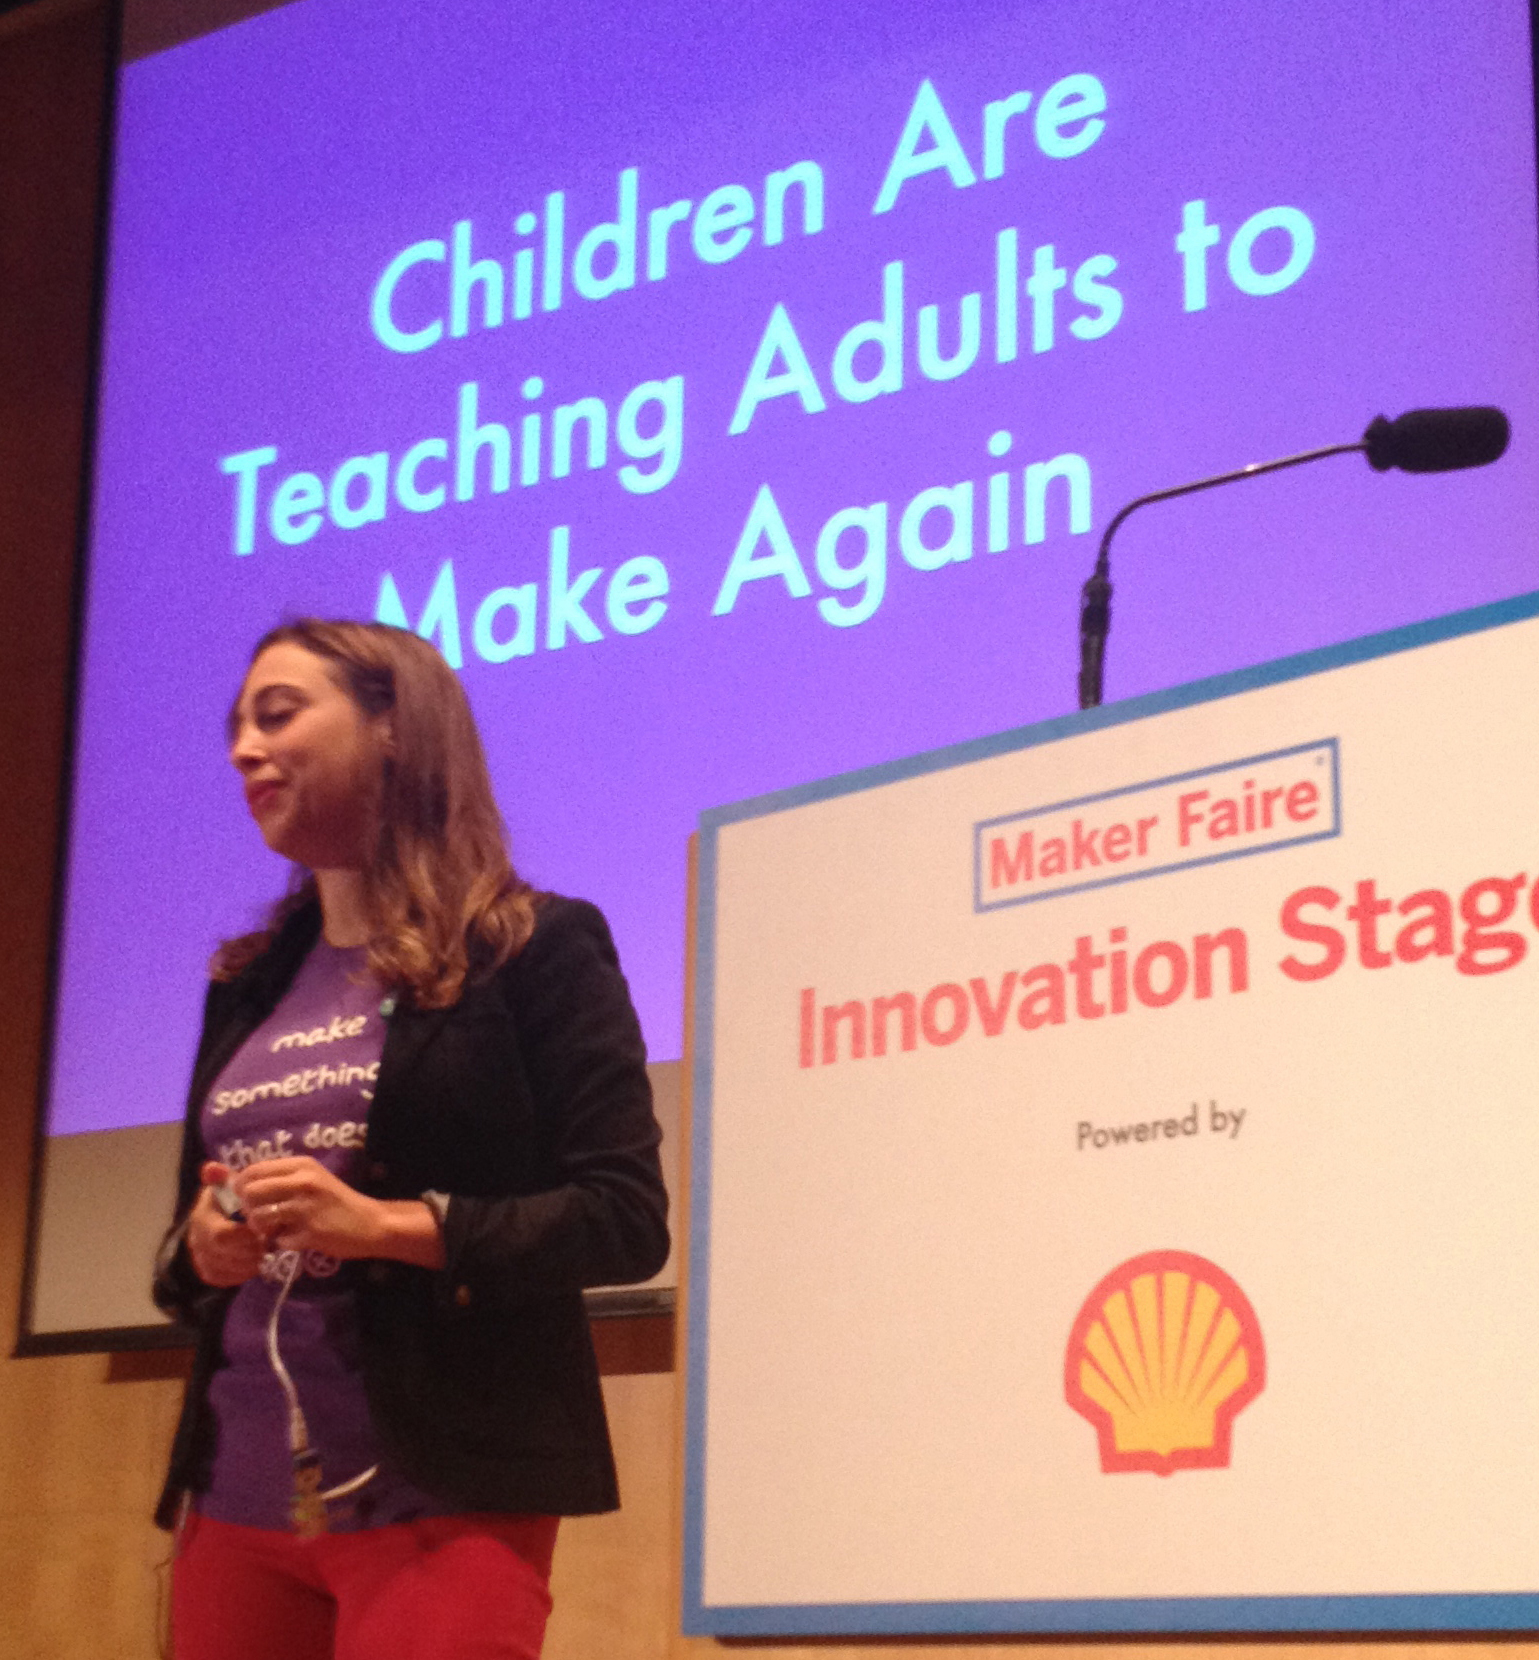 littleBits: Children are Teaching Adults to Make Again